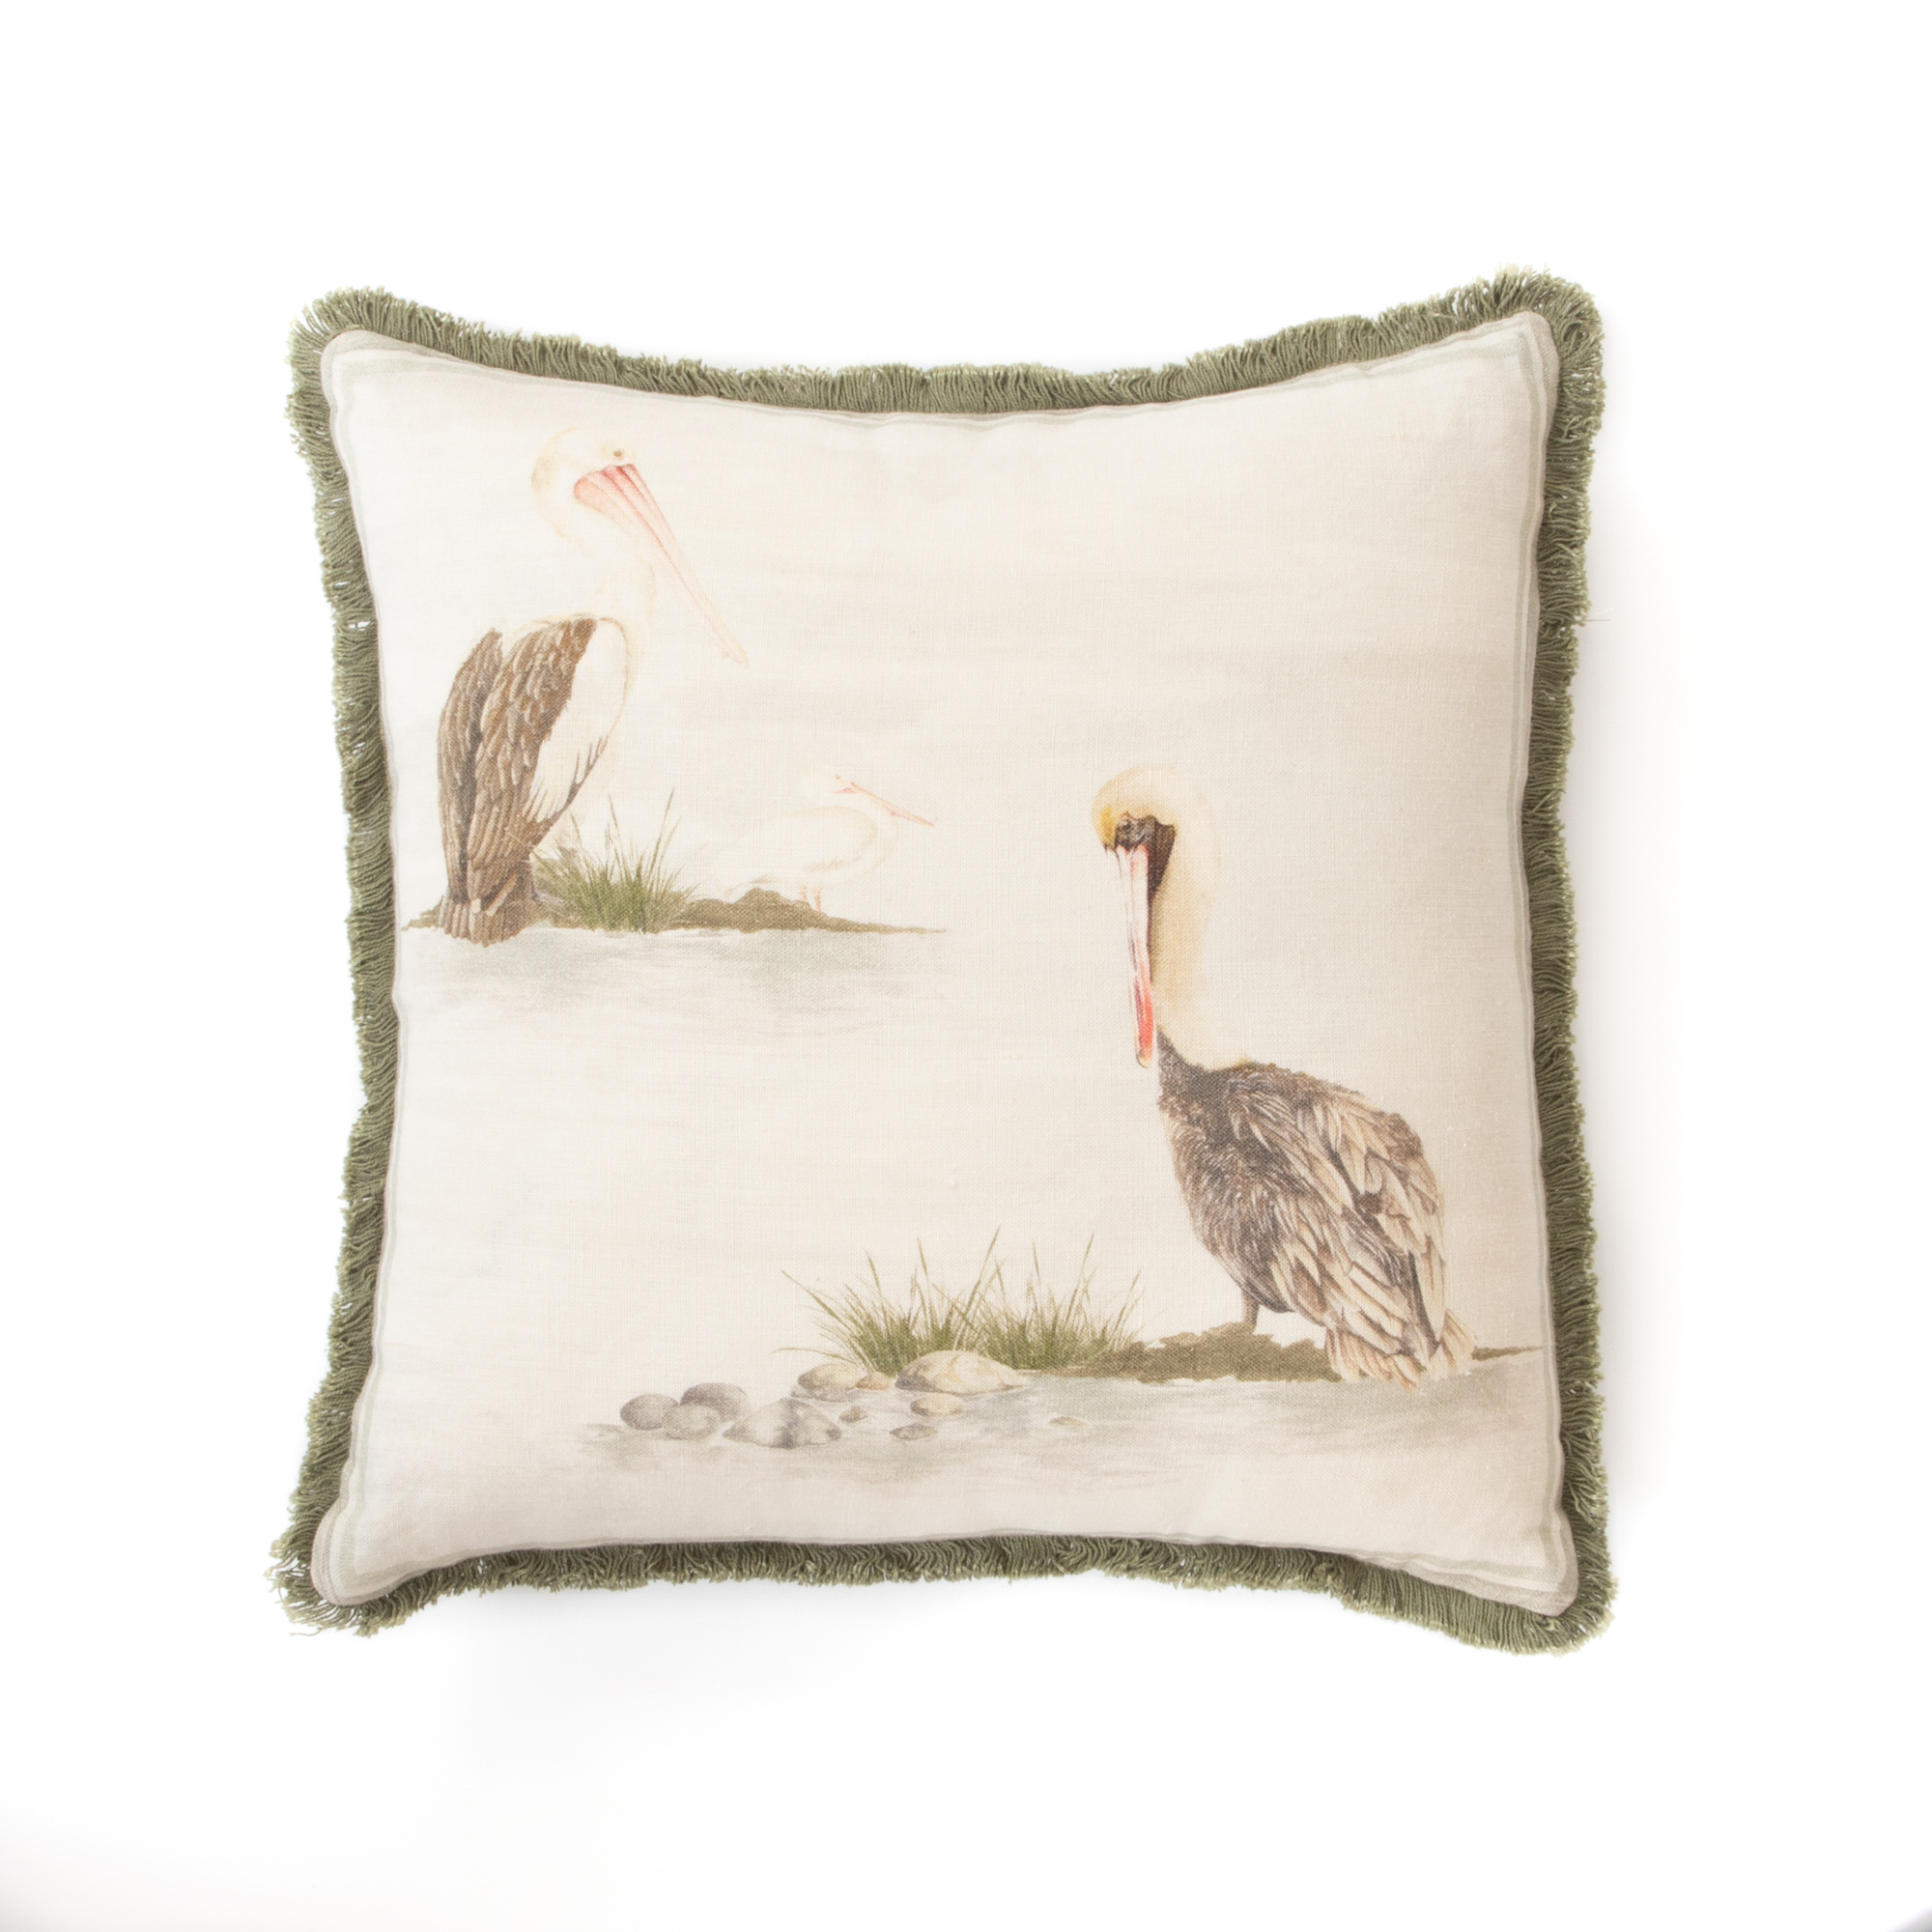 Poised Pelicans Cushion Cover